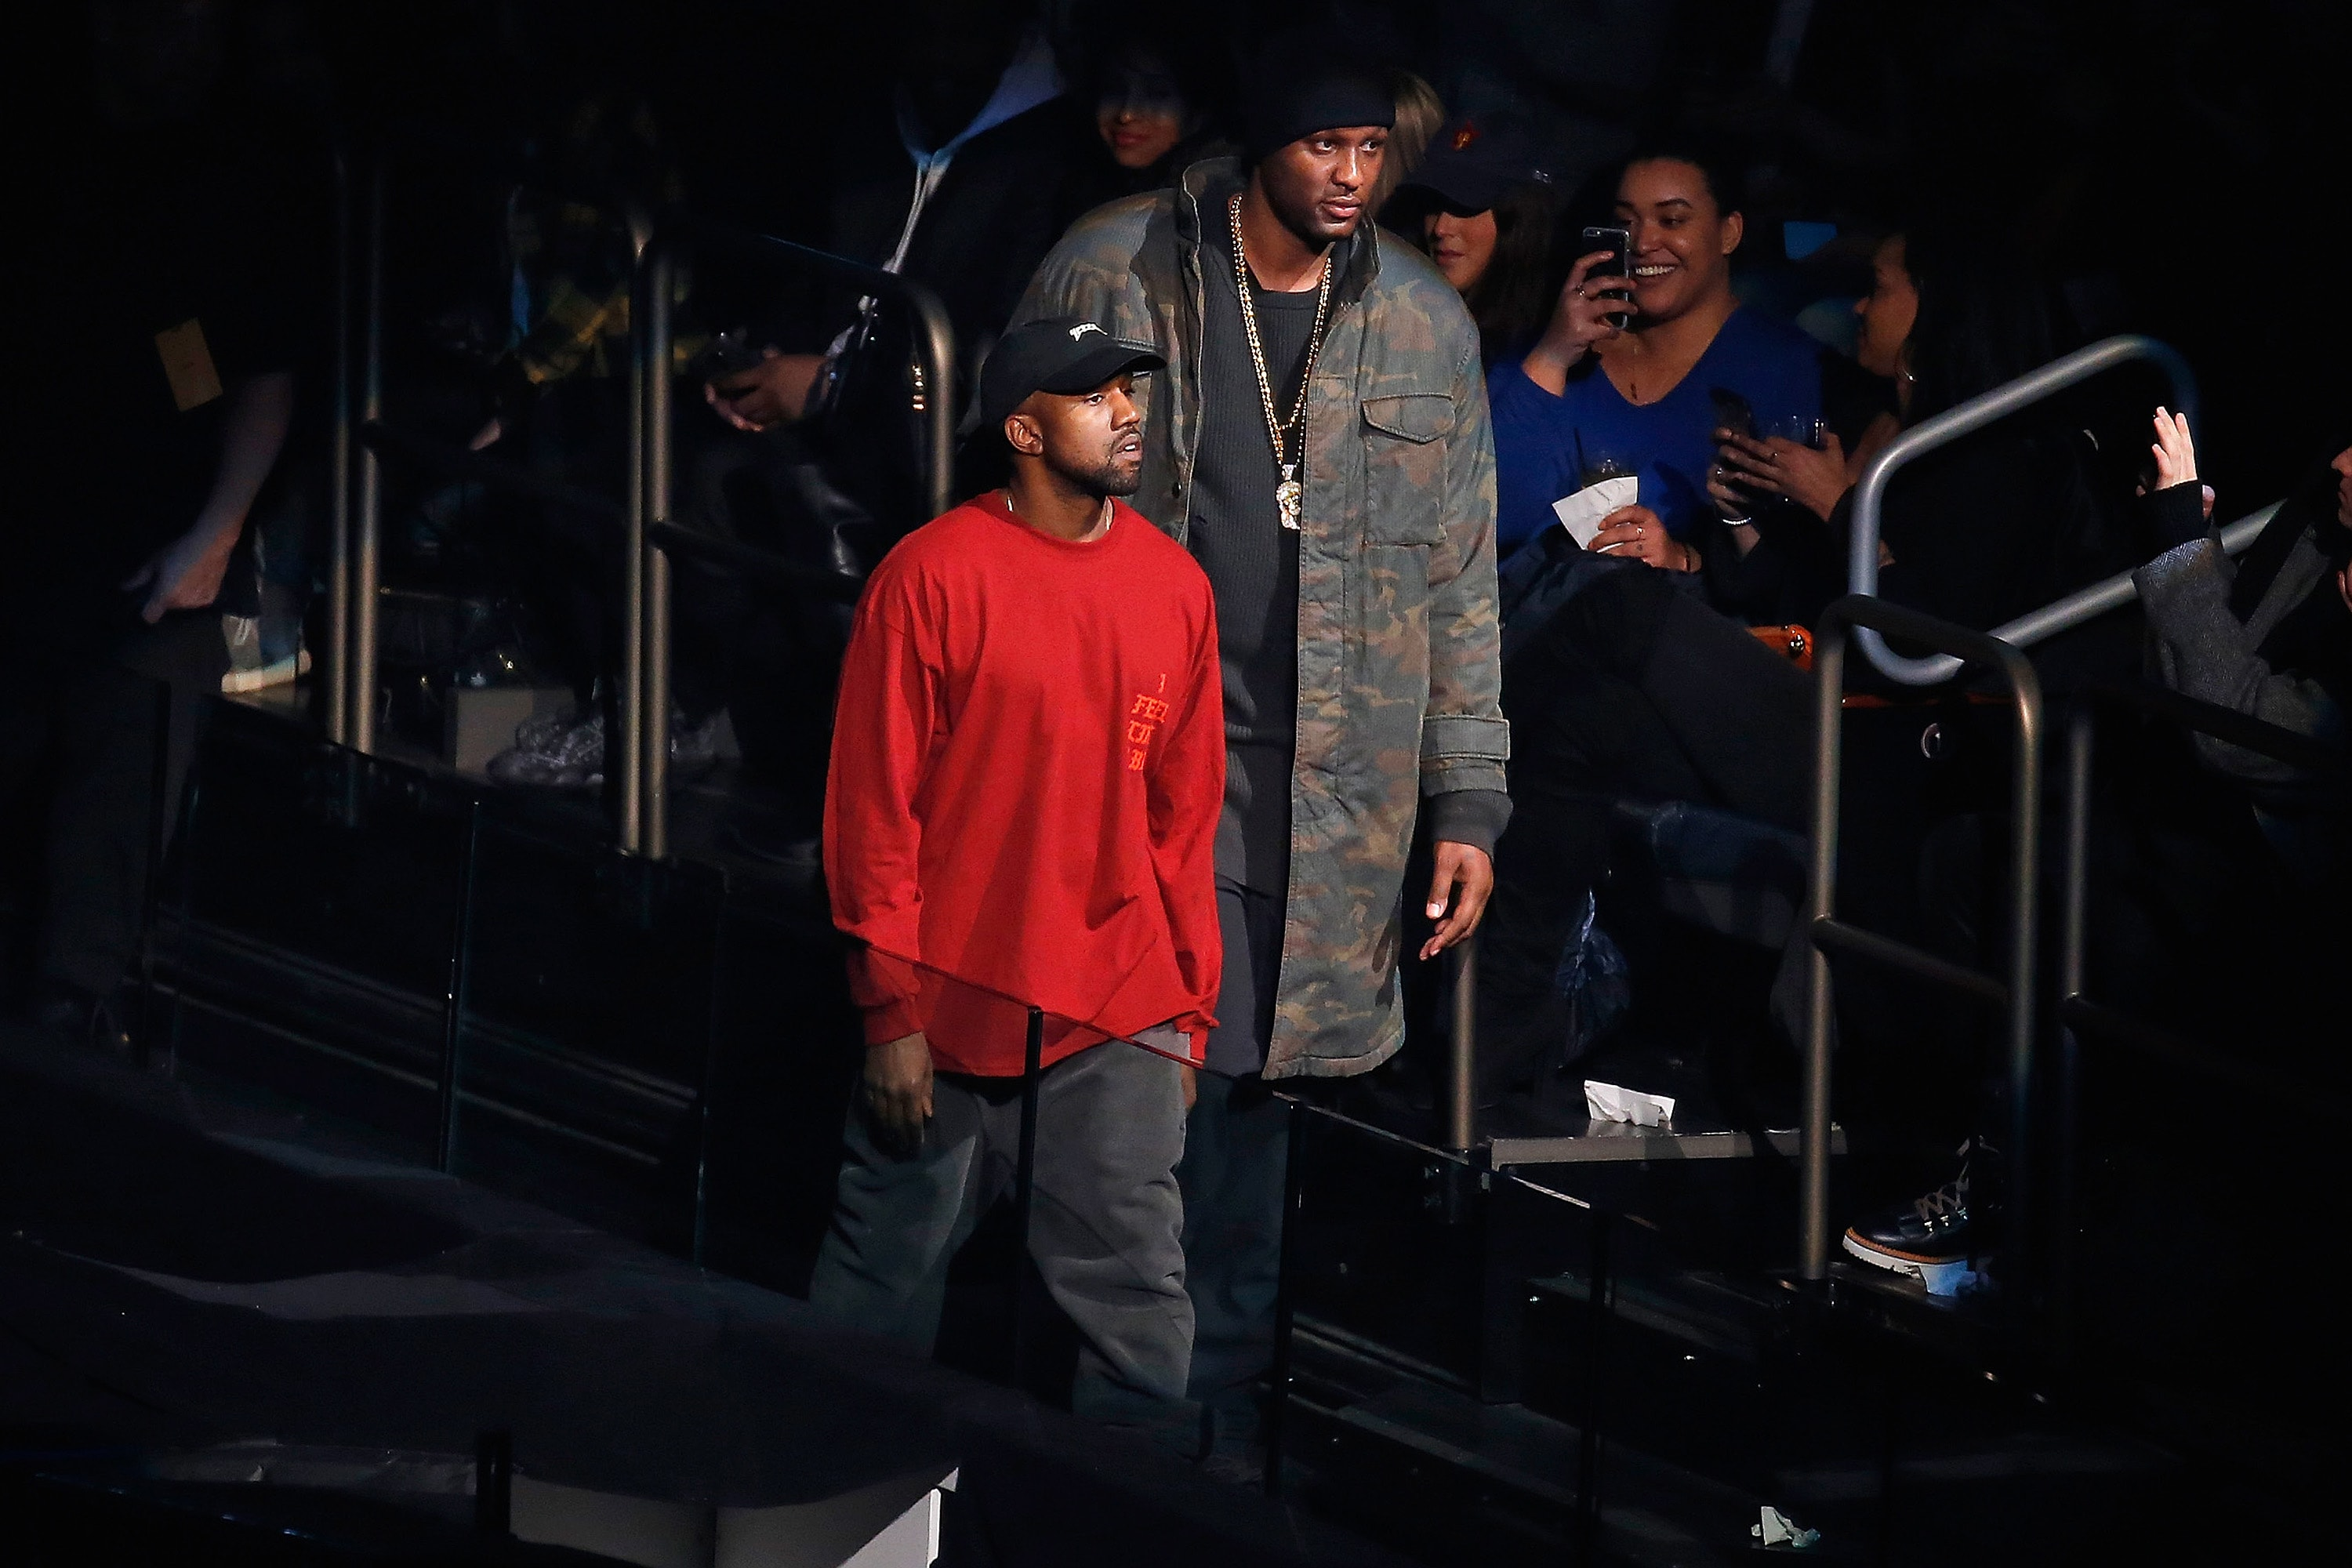 Lamar Odom at Kanye West Yeezy Fashion Show